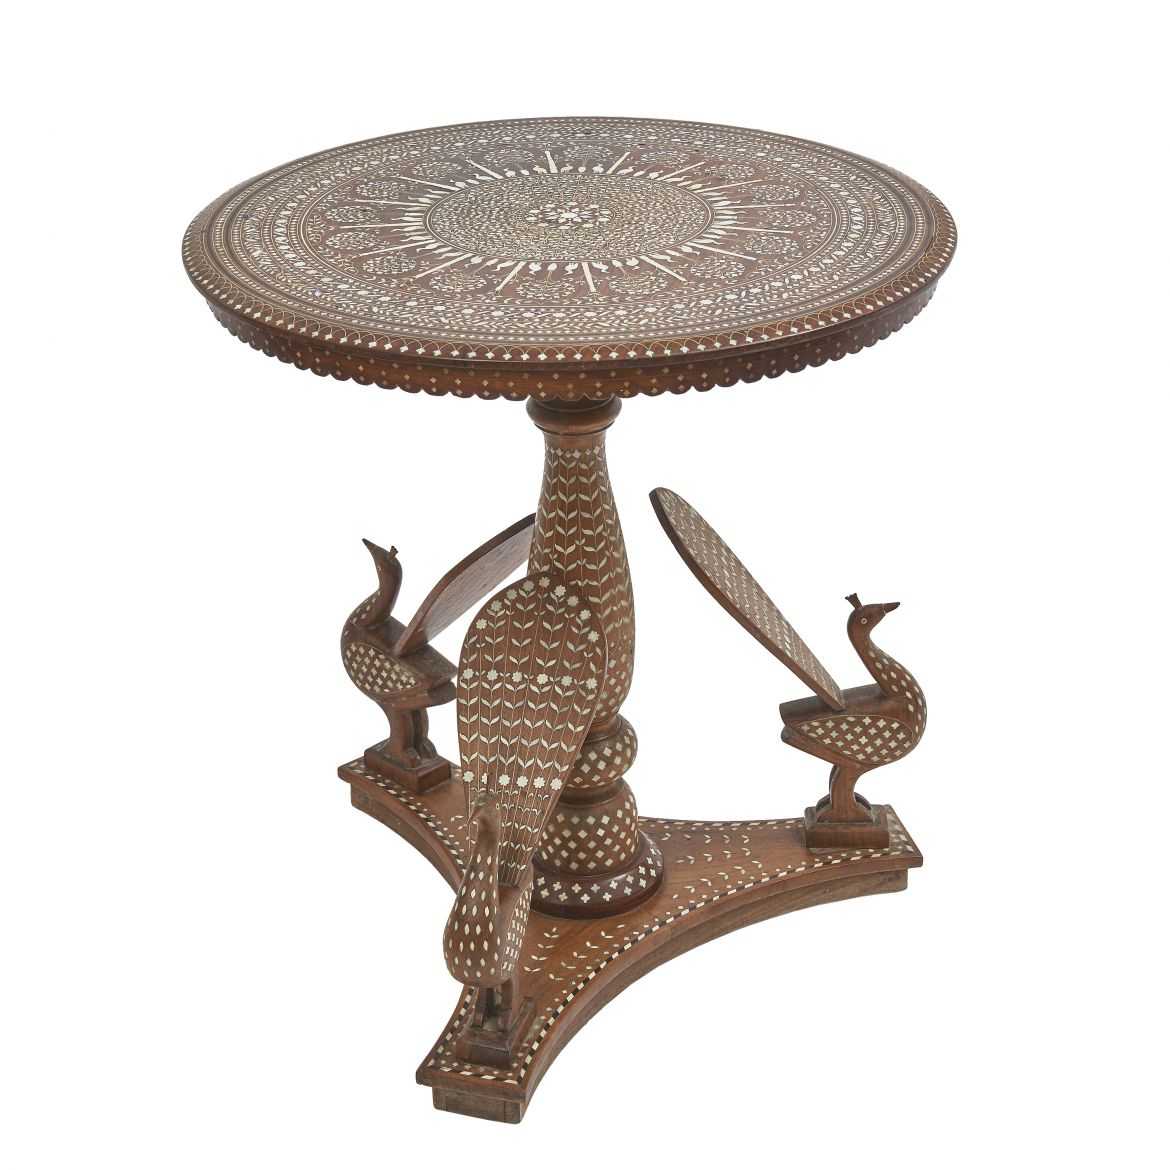 Indian Arabesque Table With Peacock Motifs